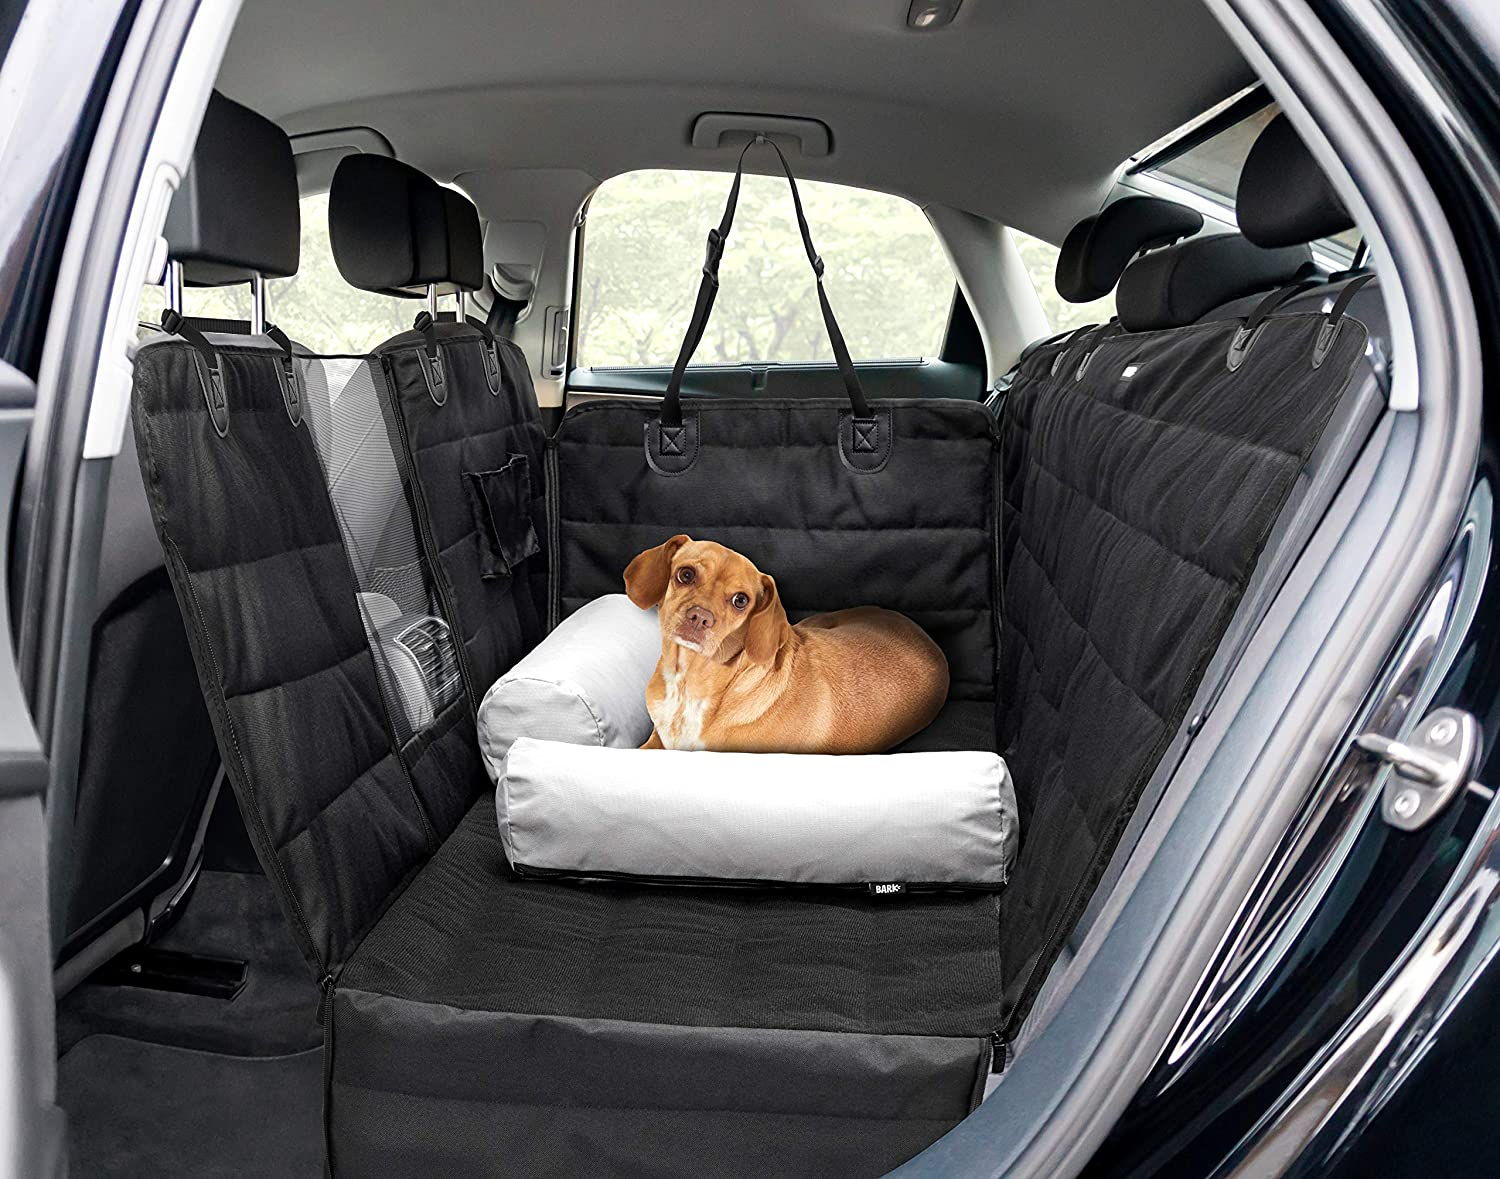 Barkbox 2-in-1 Car Seat Cover/Pillow Set for Dogs   Hammock & Bed, Durable, Waterproof, Non-Slip Pet Accessory   Standard Size for Back Seat of Cars, Trucks & SUVs   Includes Seat Belt & Storage Case